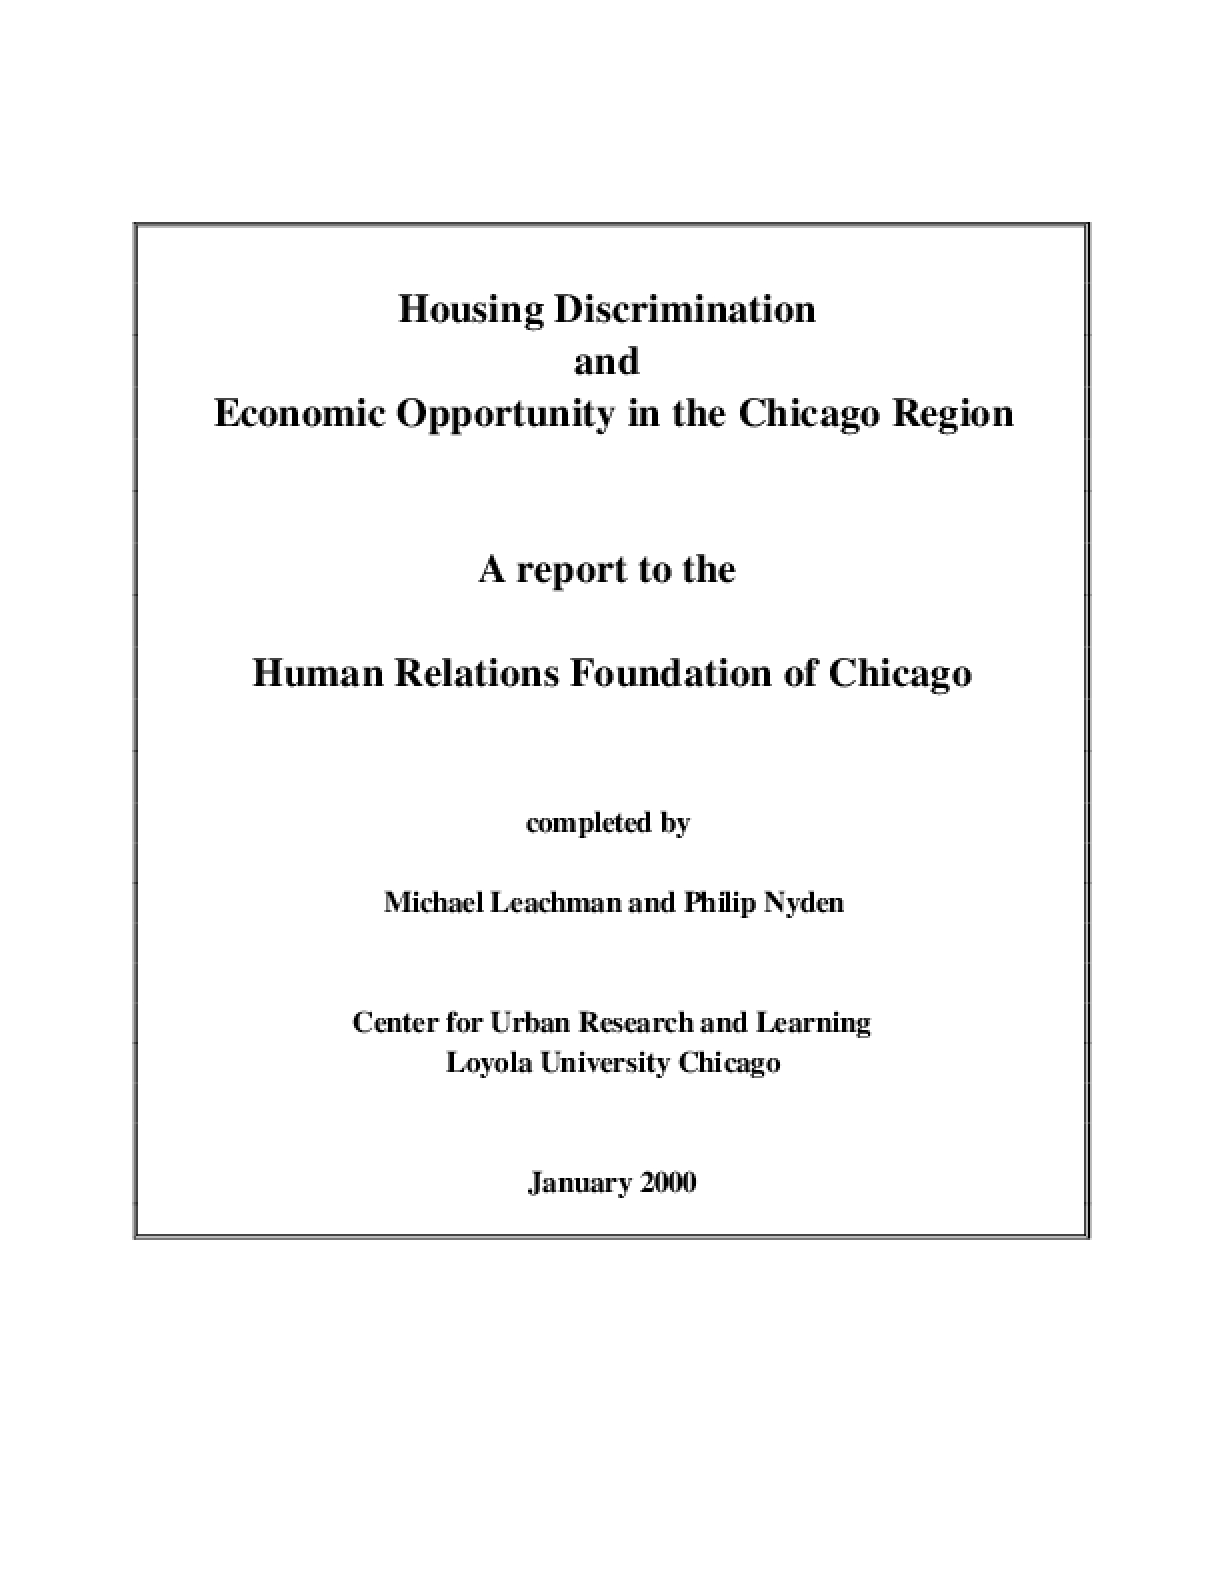 Housing Discrimination and Economic Opportunity in Chicago Region: A Report to the Human Relations Foundation of Chicago